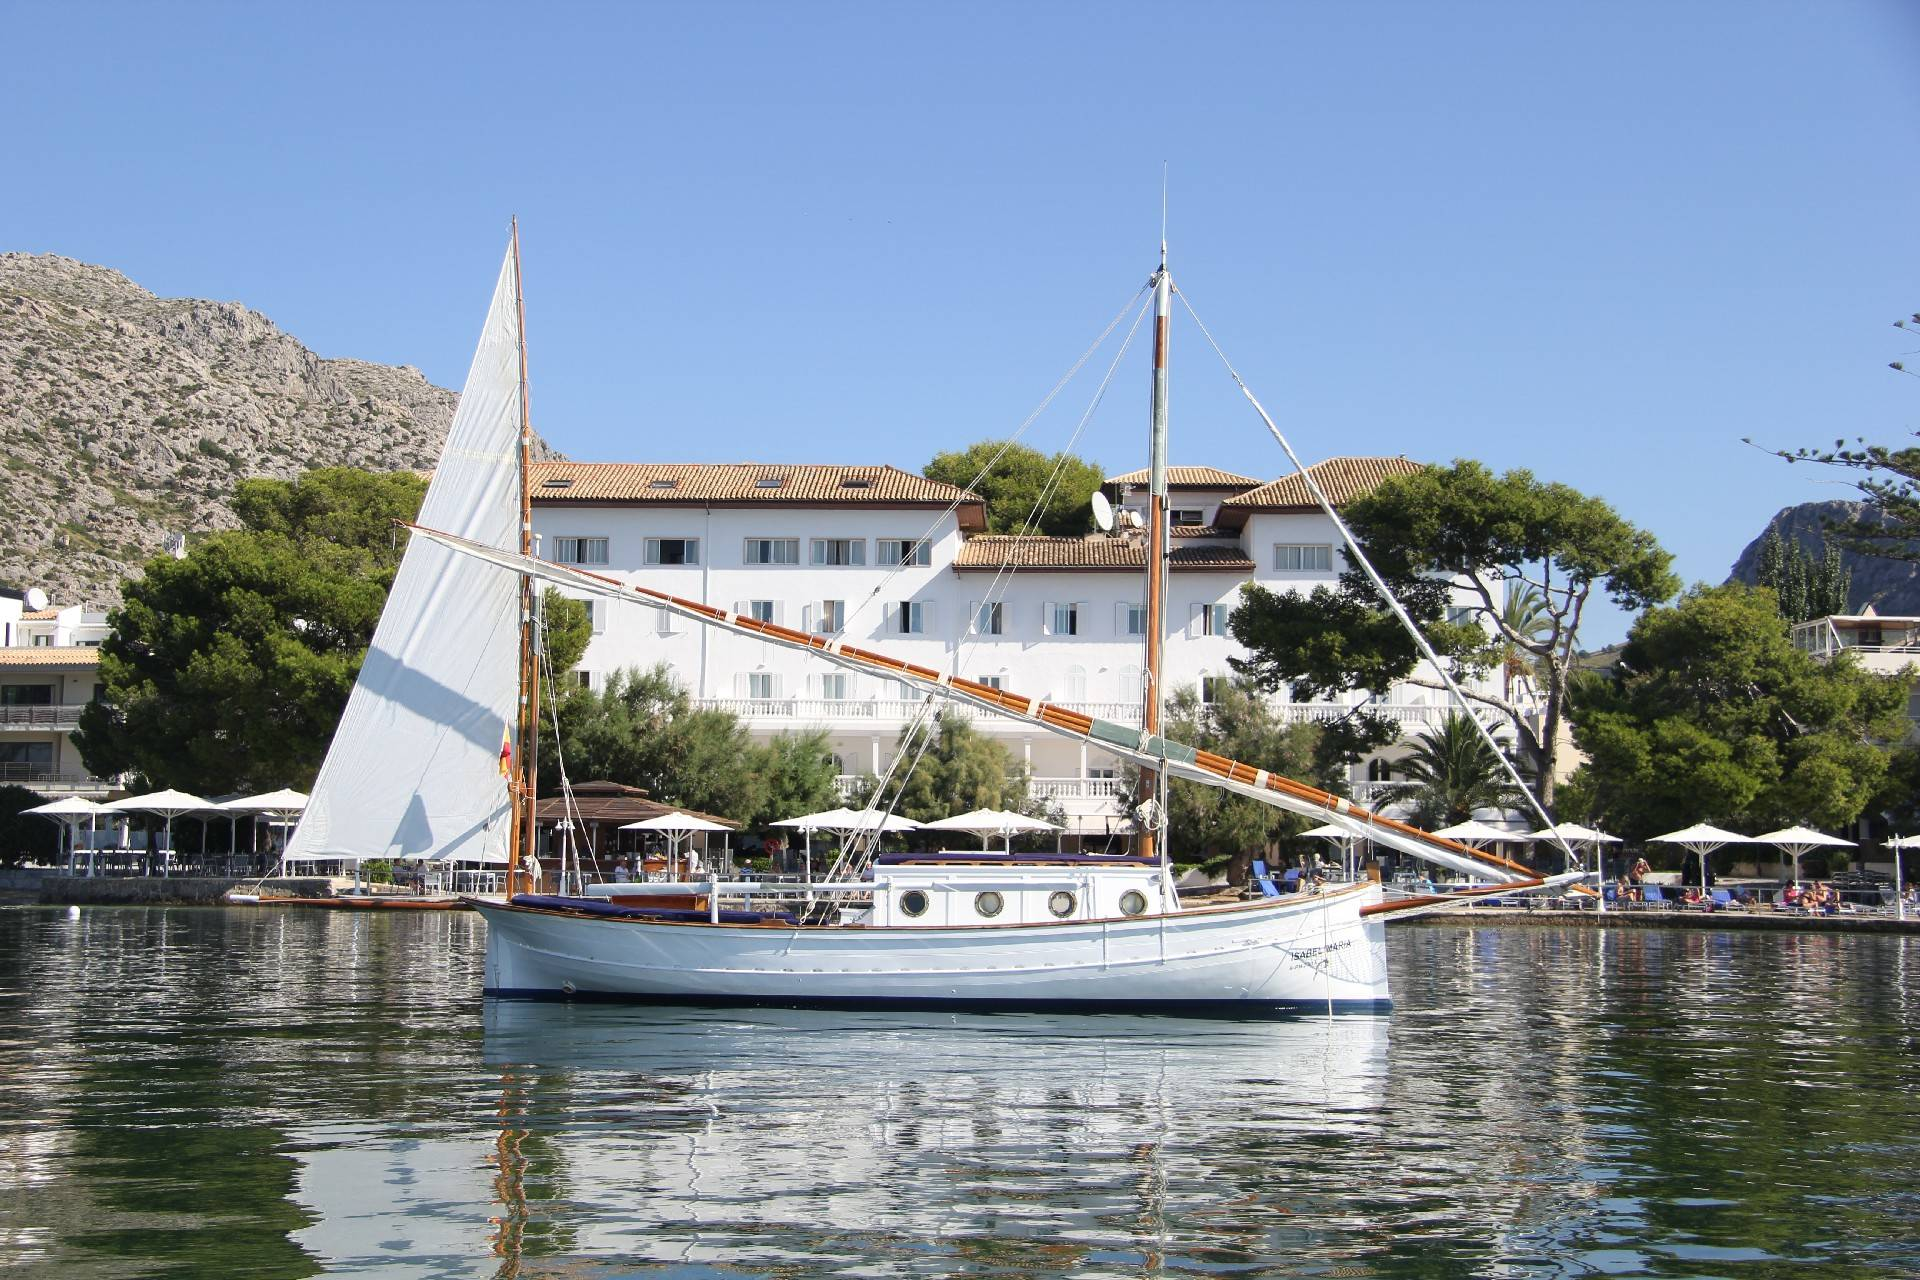 isabel-maría-2-boat-at-hotel-illa-d'or-puerto-pollensa--by-hoposa